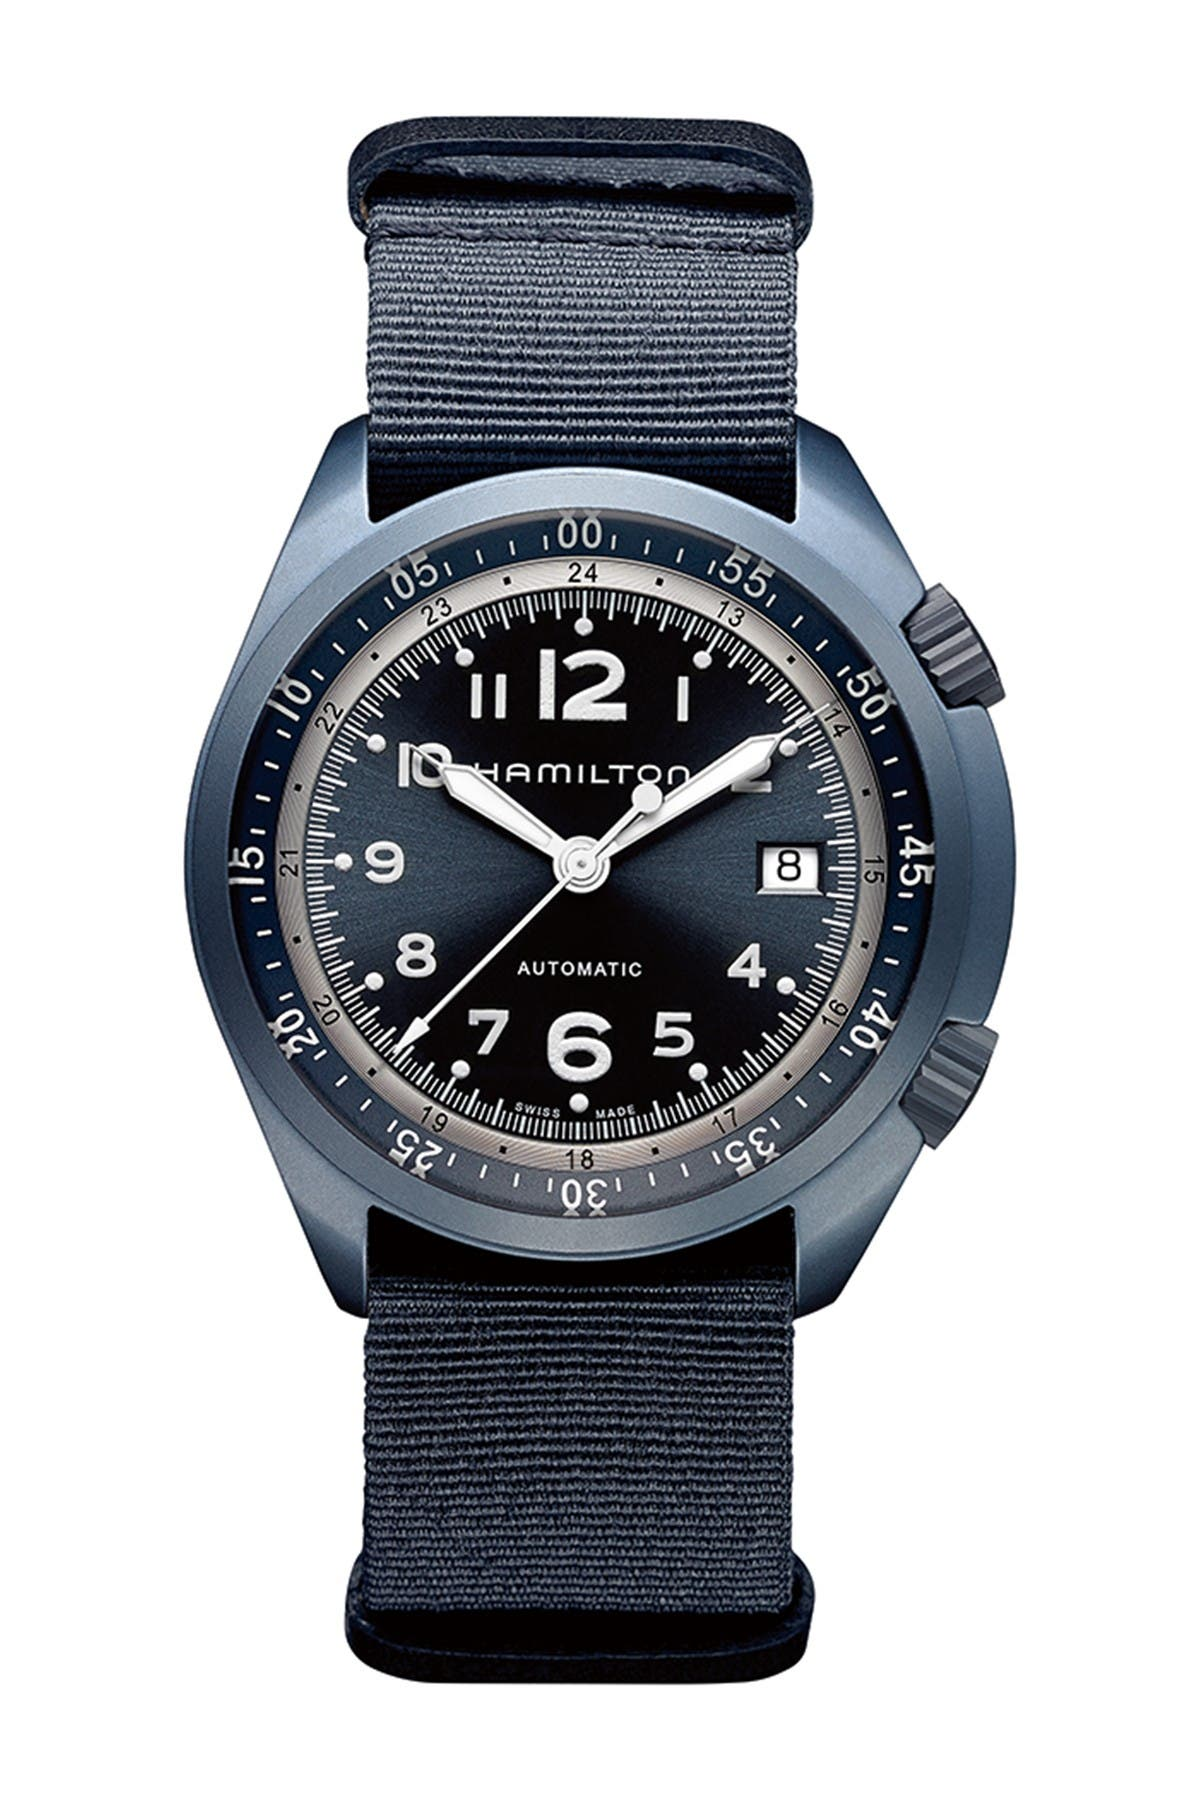 Image of Hamilton Men's Khaki Pilot Pioneer Automatic Watch, 41mm